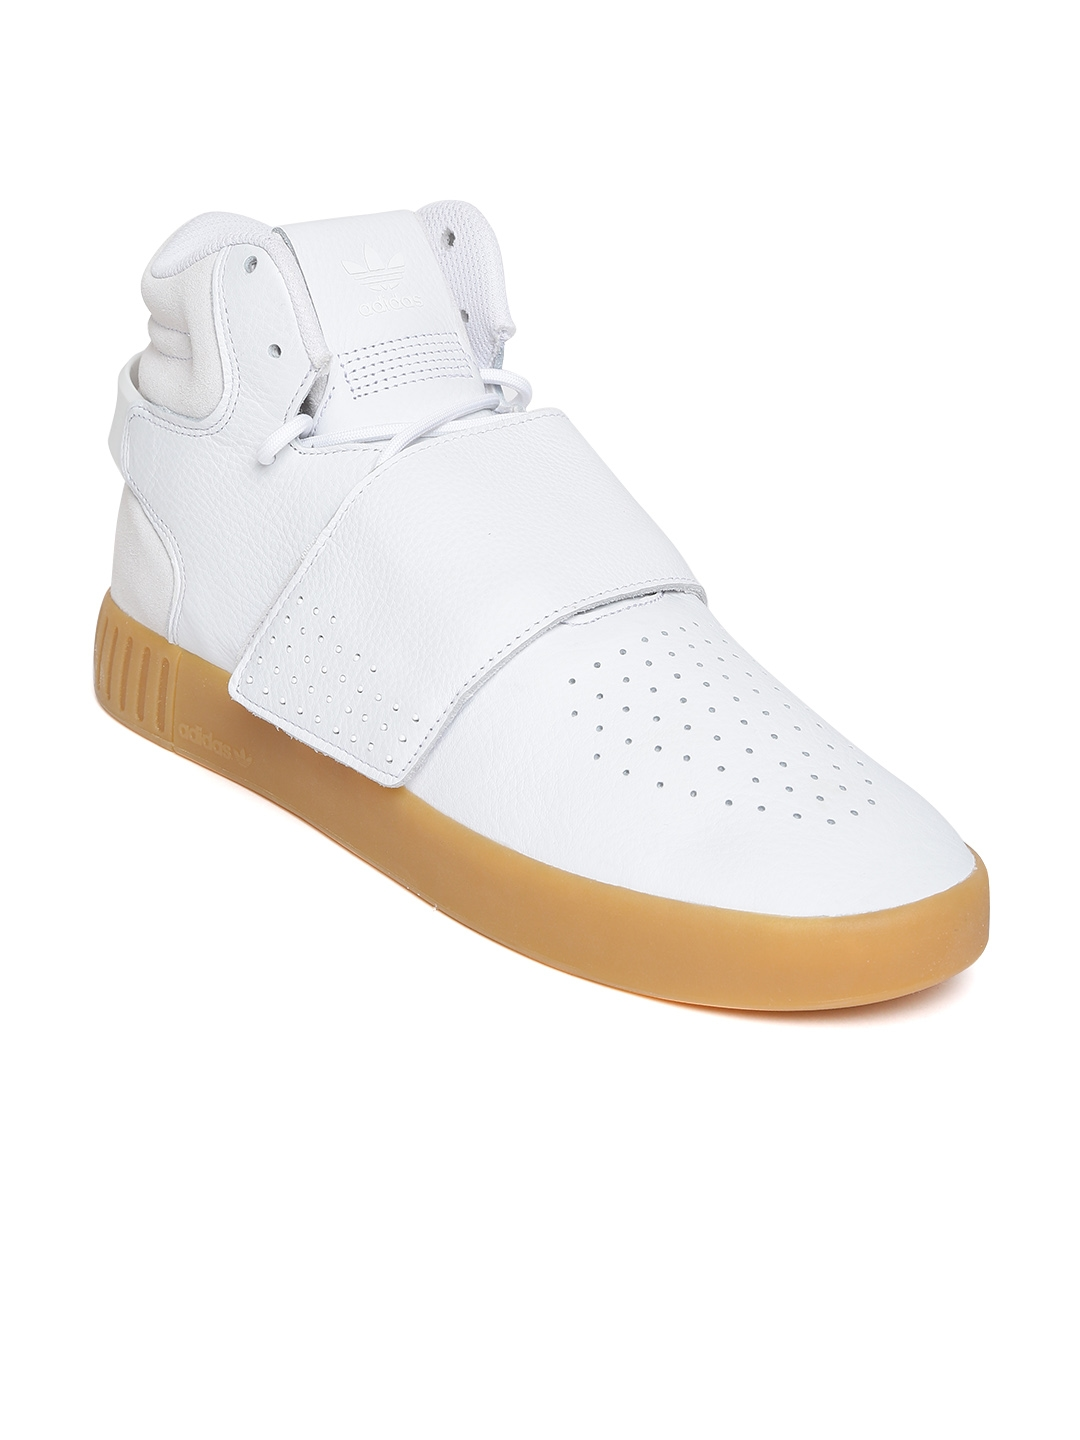 ADIDAS Originals Men White Tubular Invader Strap Mid-Top Leather Sneakers 9ce517c17